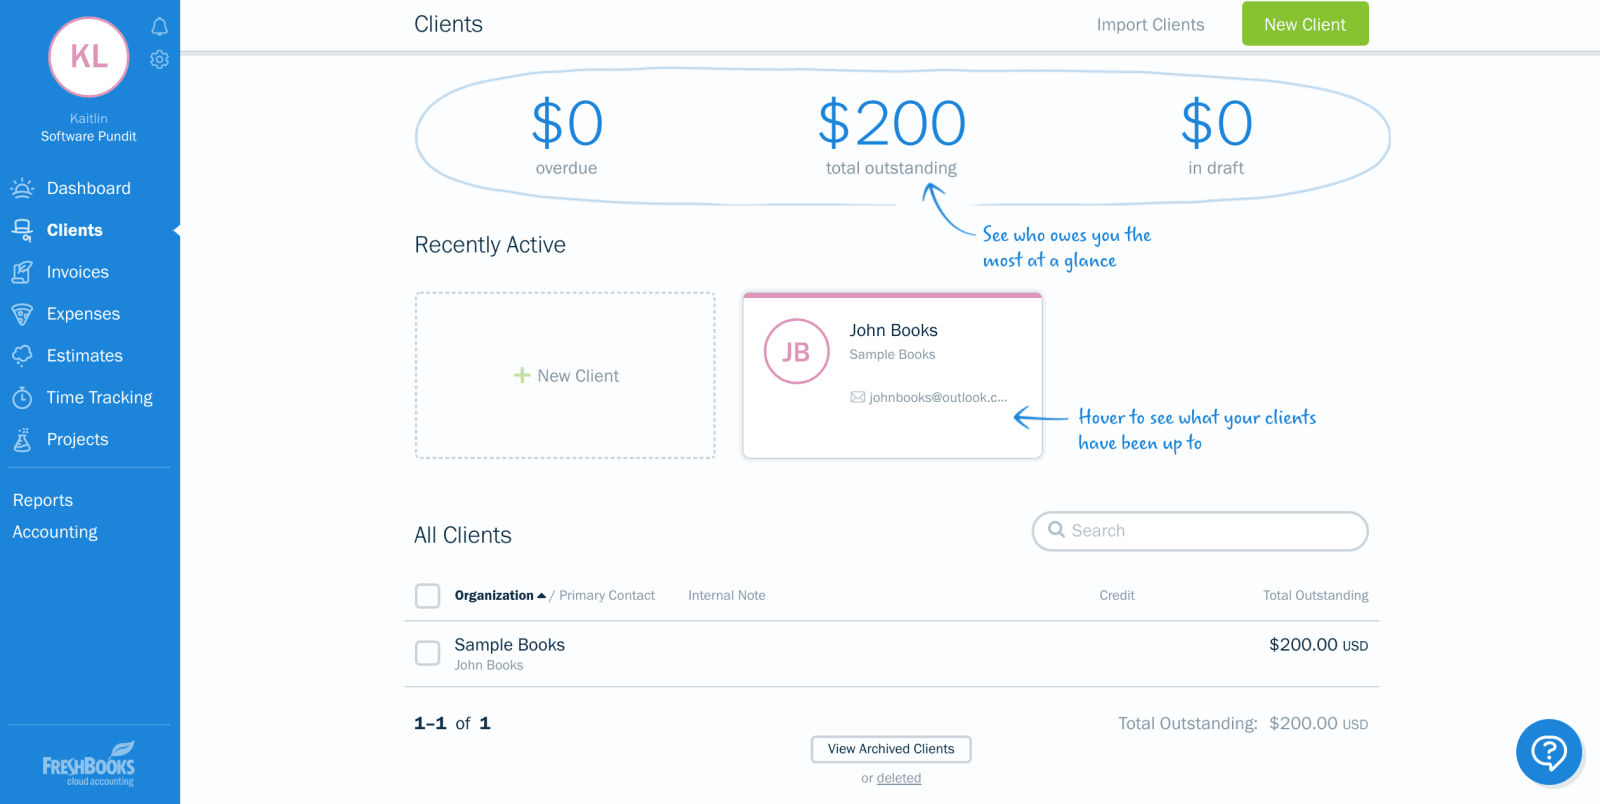 Turn Off Late Payment Freshbooks